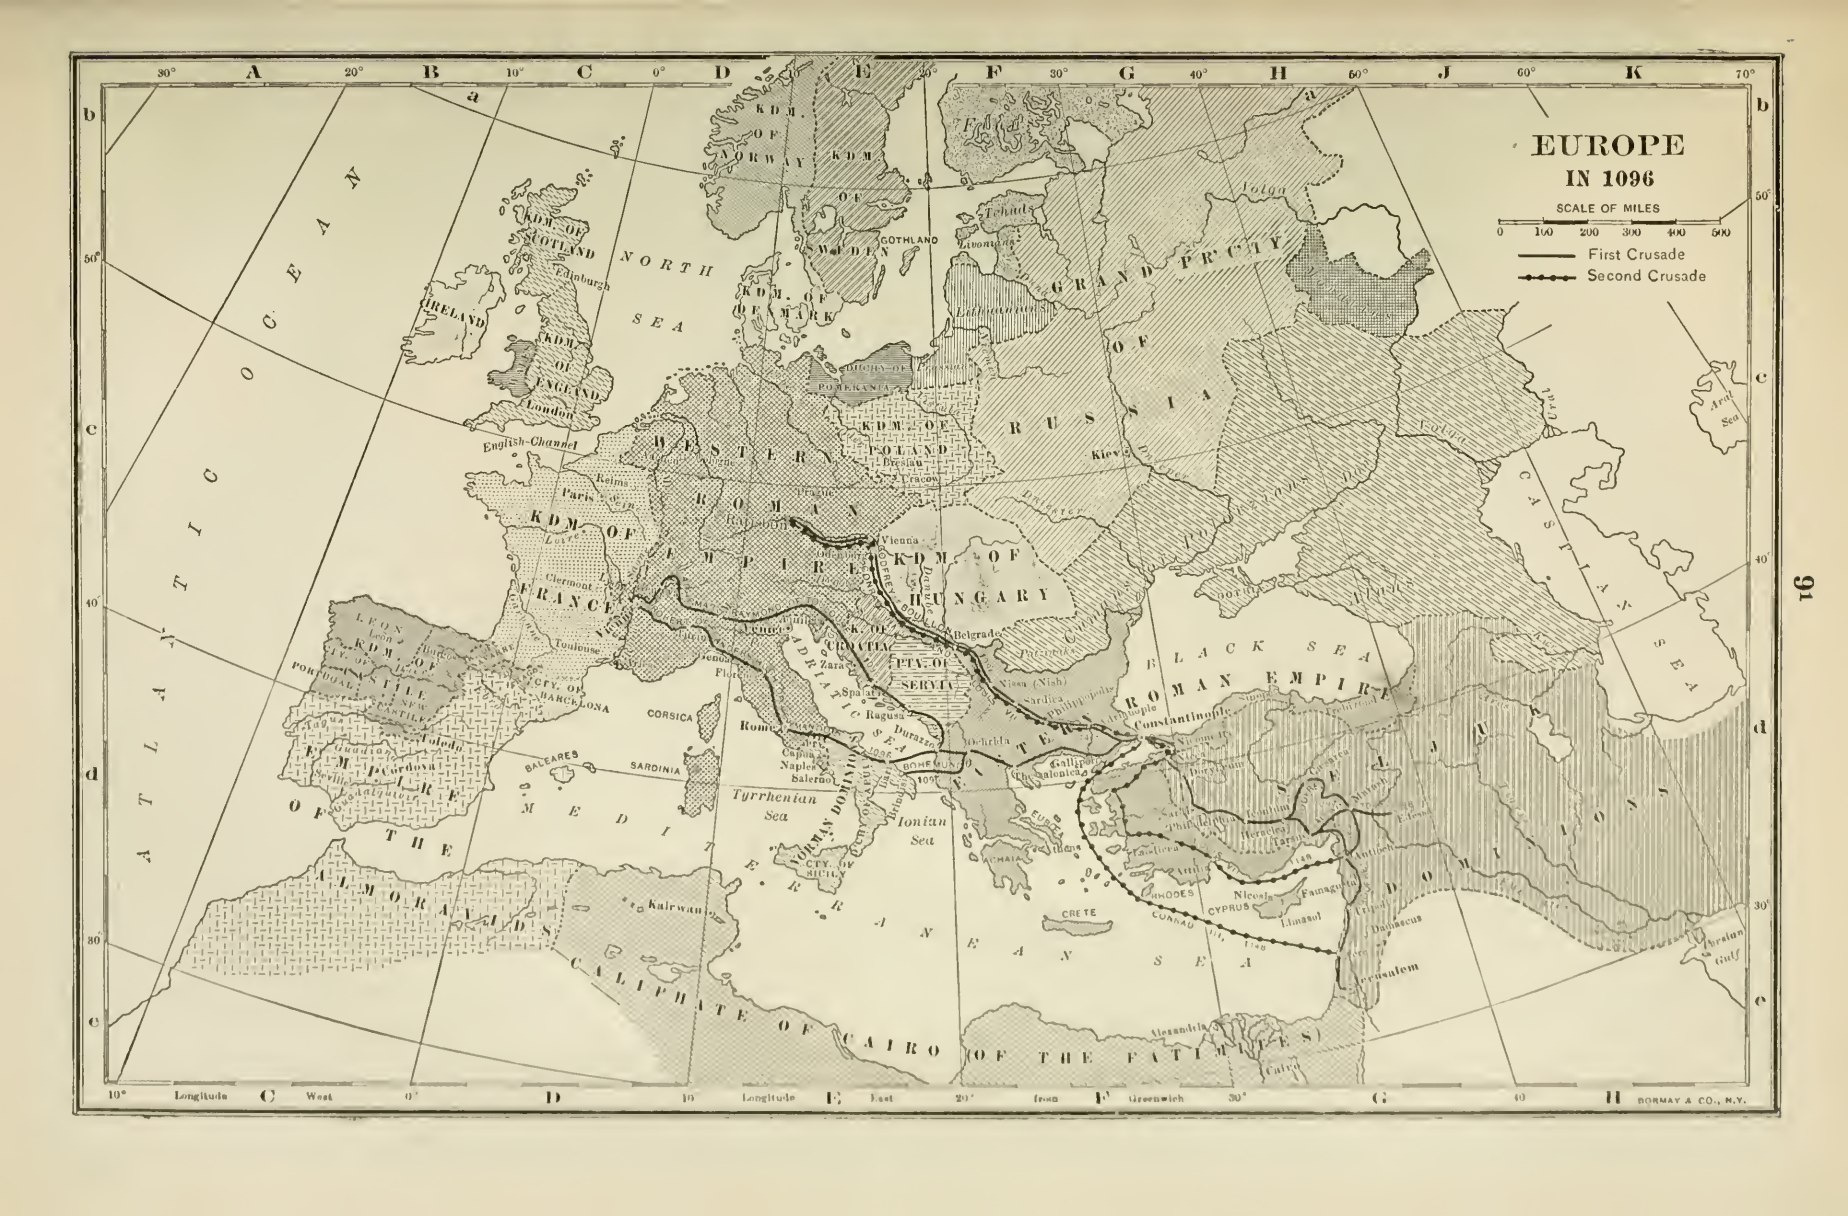 File:Europe in 1096 (Atlas of European history, 1909).PNG